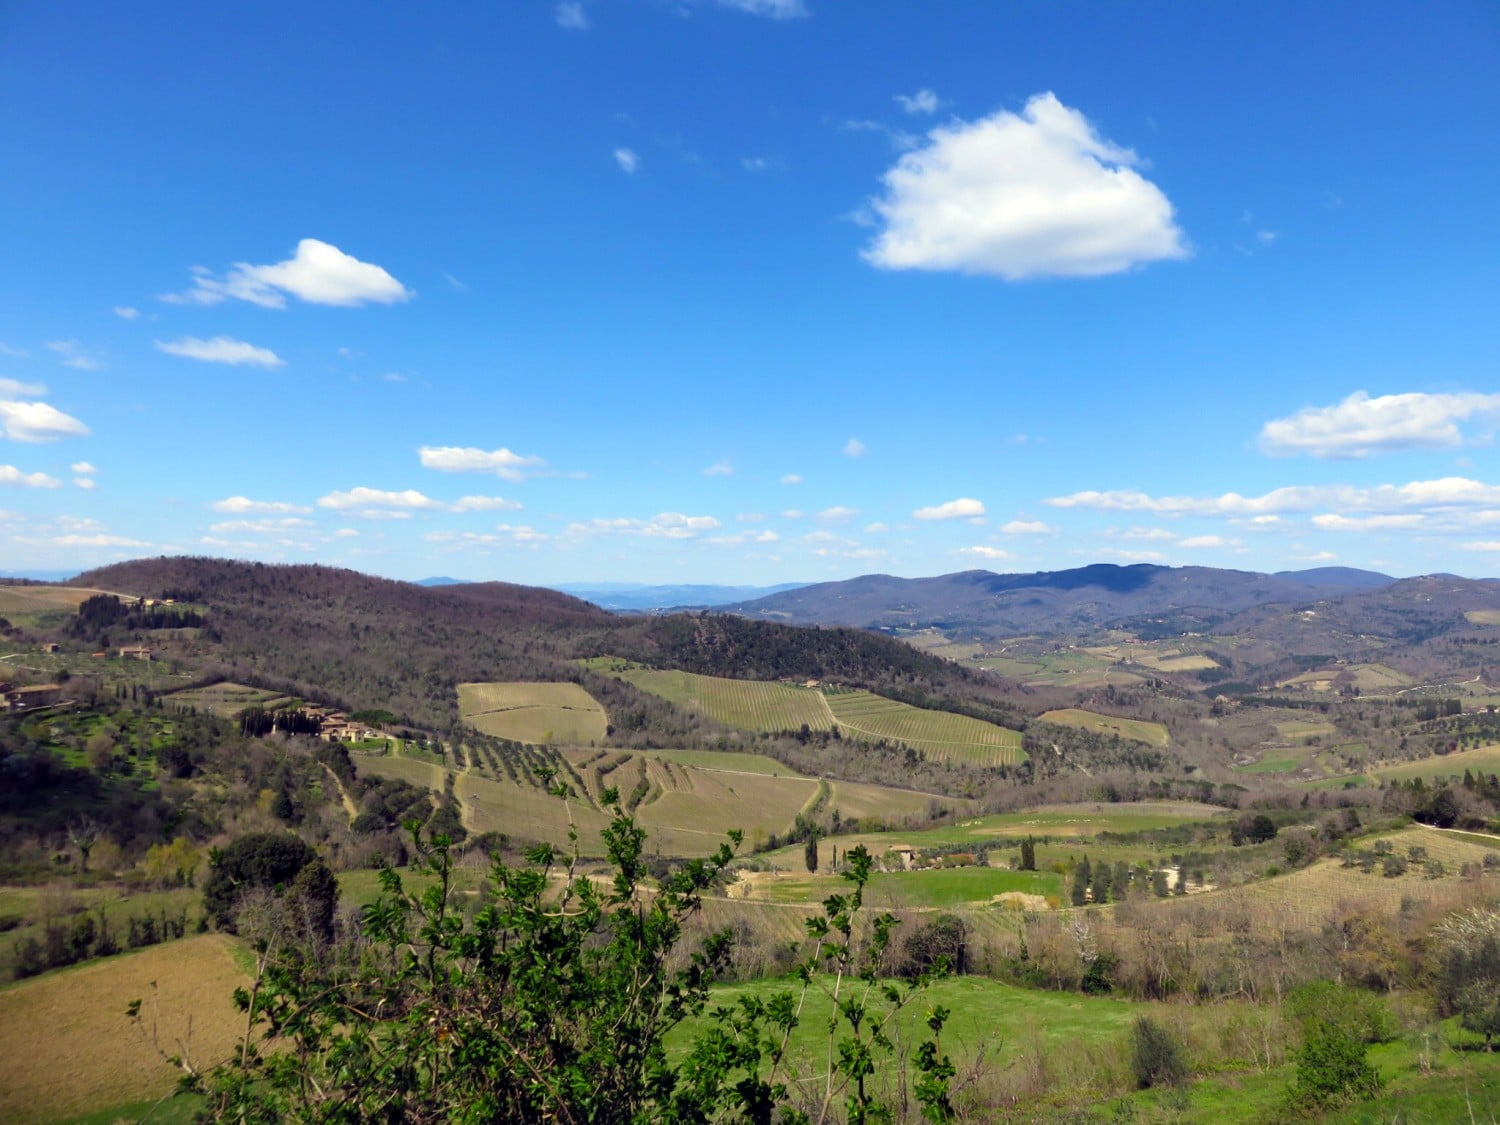 The Ultimate Italian Road Trip: Travels Through Tuscany